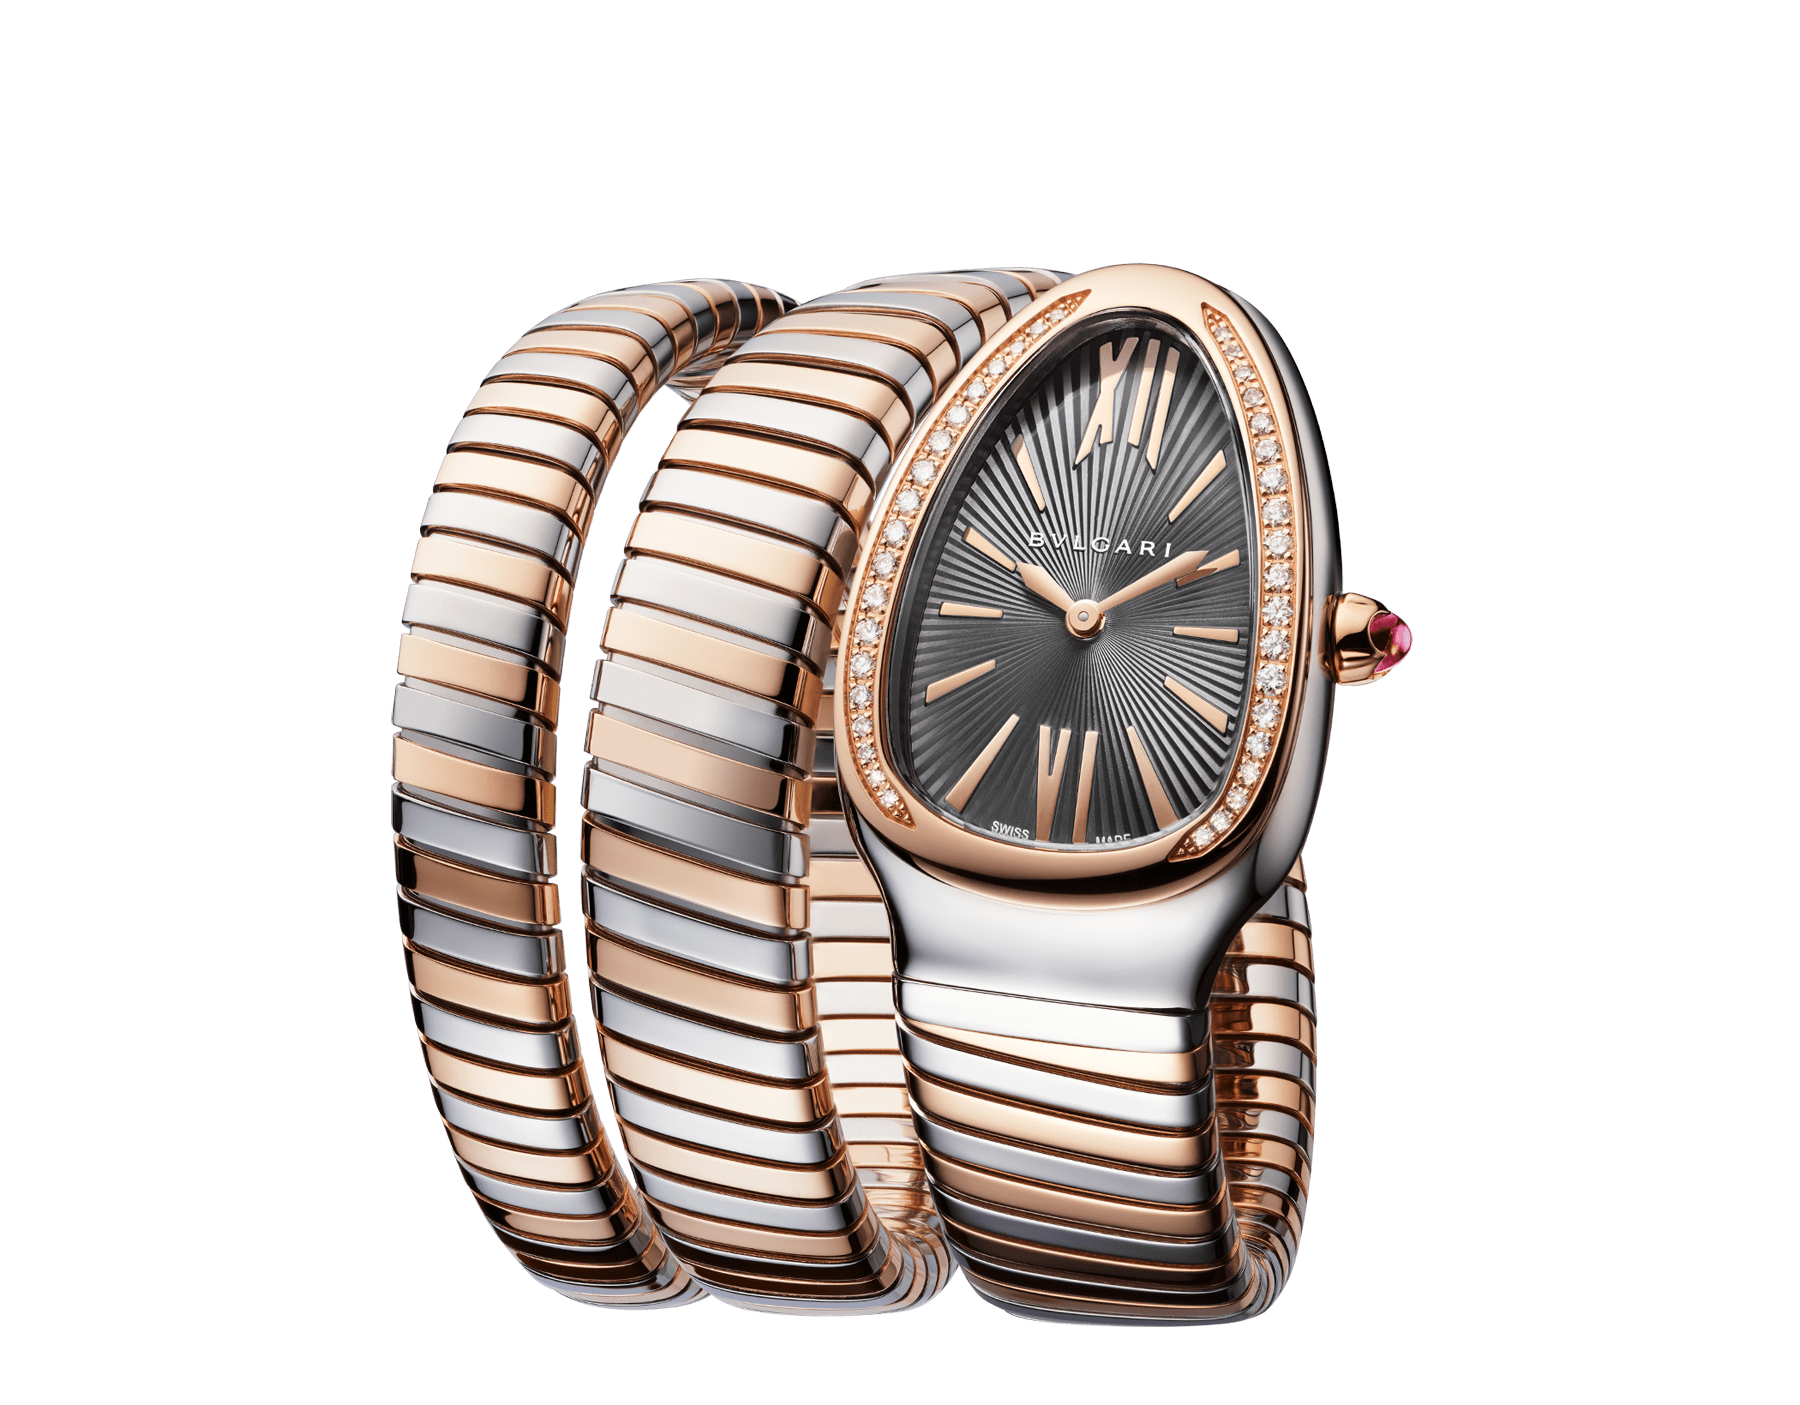 Serpenti Tubogas double spiral watch with stainless steel case, 18 kt rose gold bezel set with brilliant cut diamonds, grey lacquered dial, 18 kt rose gold and stainless steel bracelet. 102680 image 2